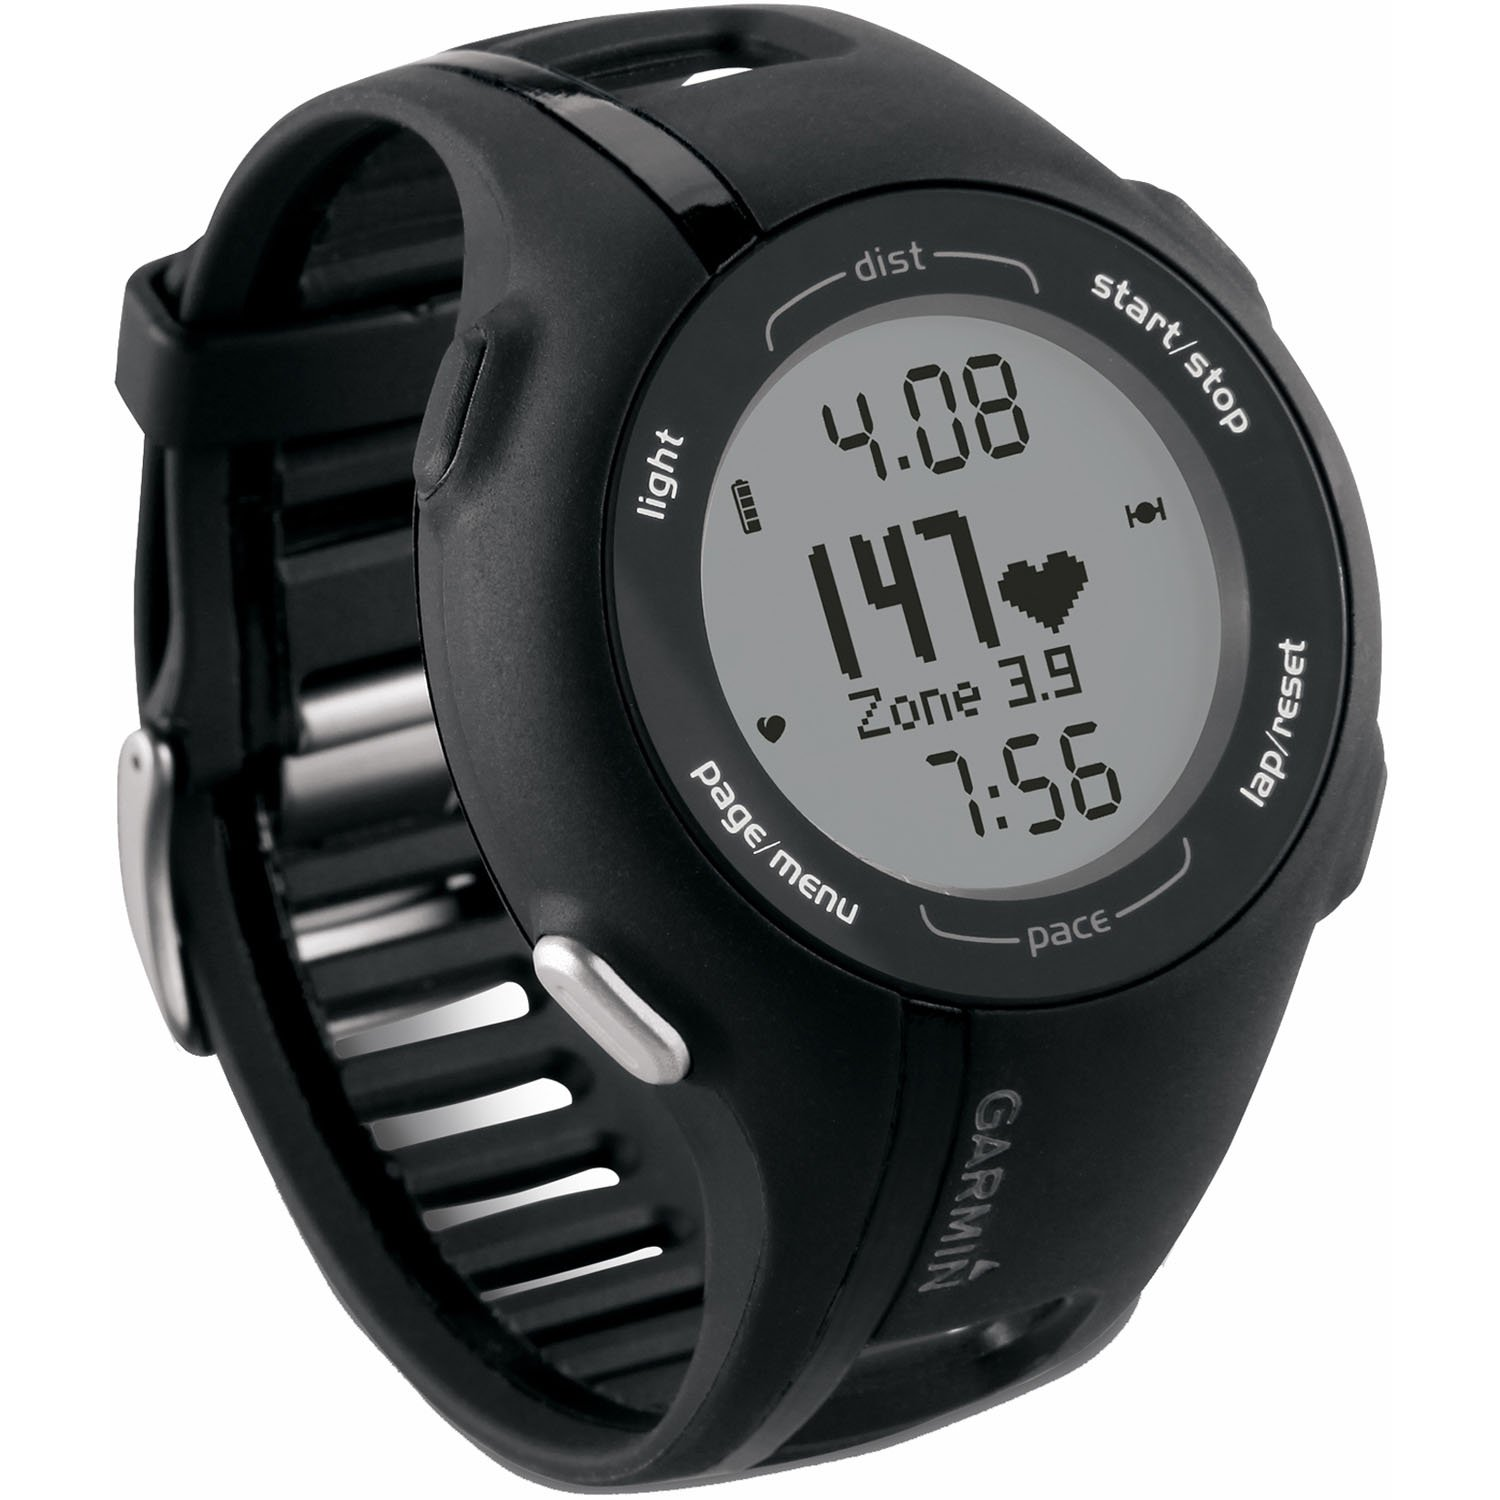 wrist blue rate based reg with garmin product watches watch h running forerunner gps b heart c frost photo